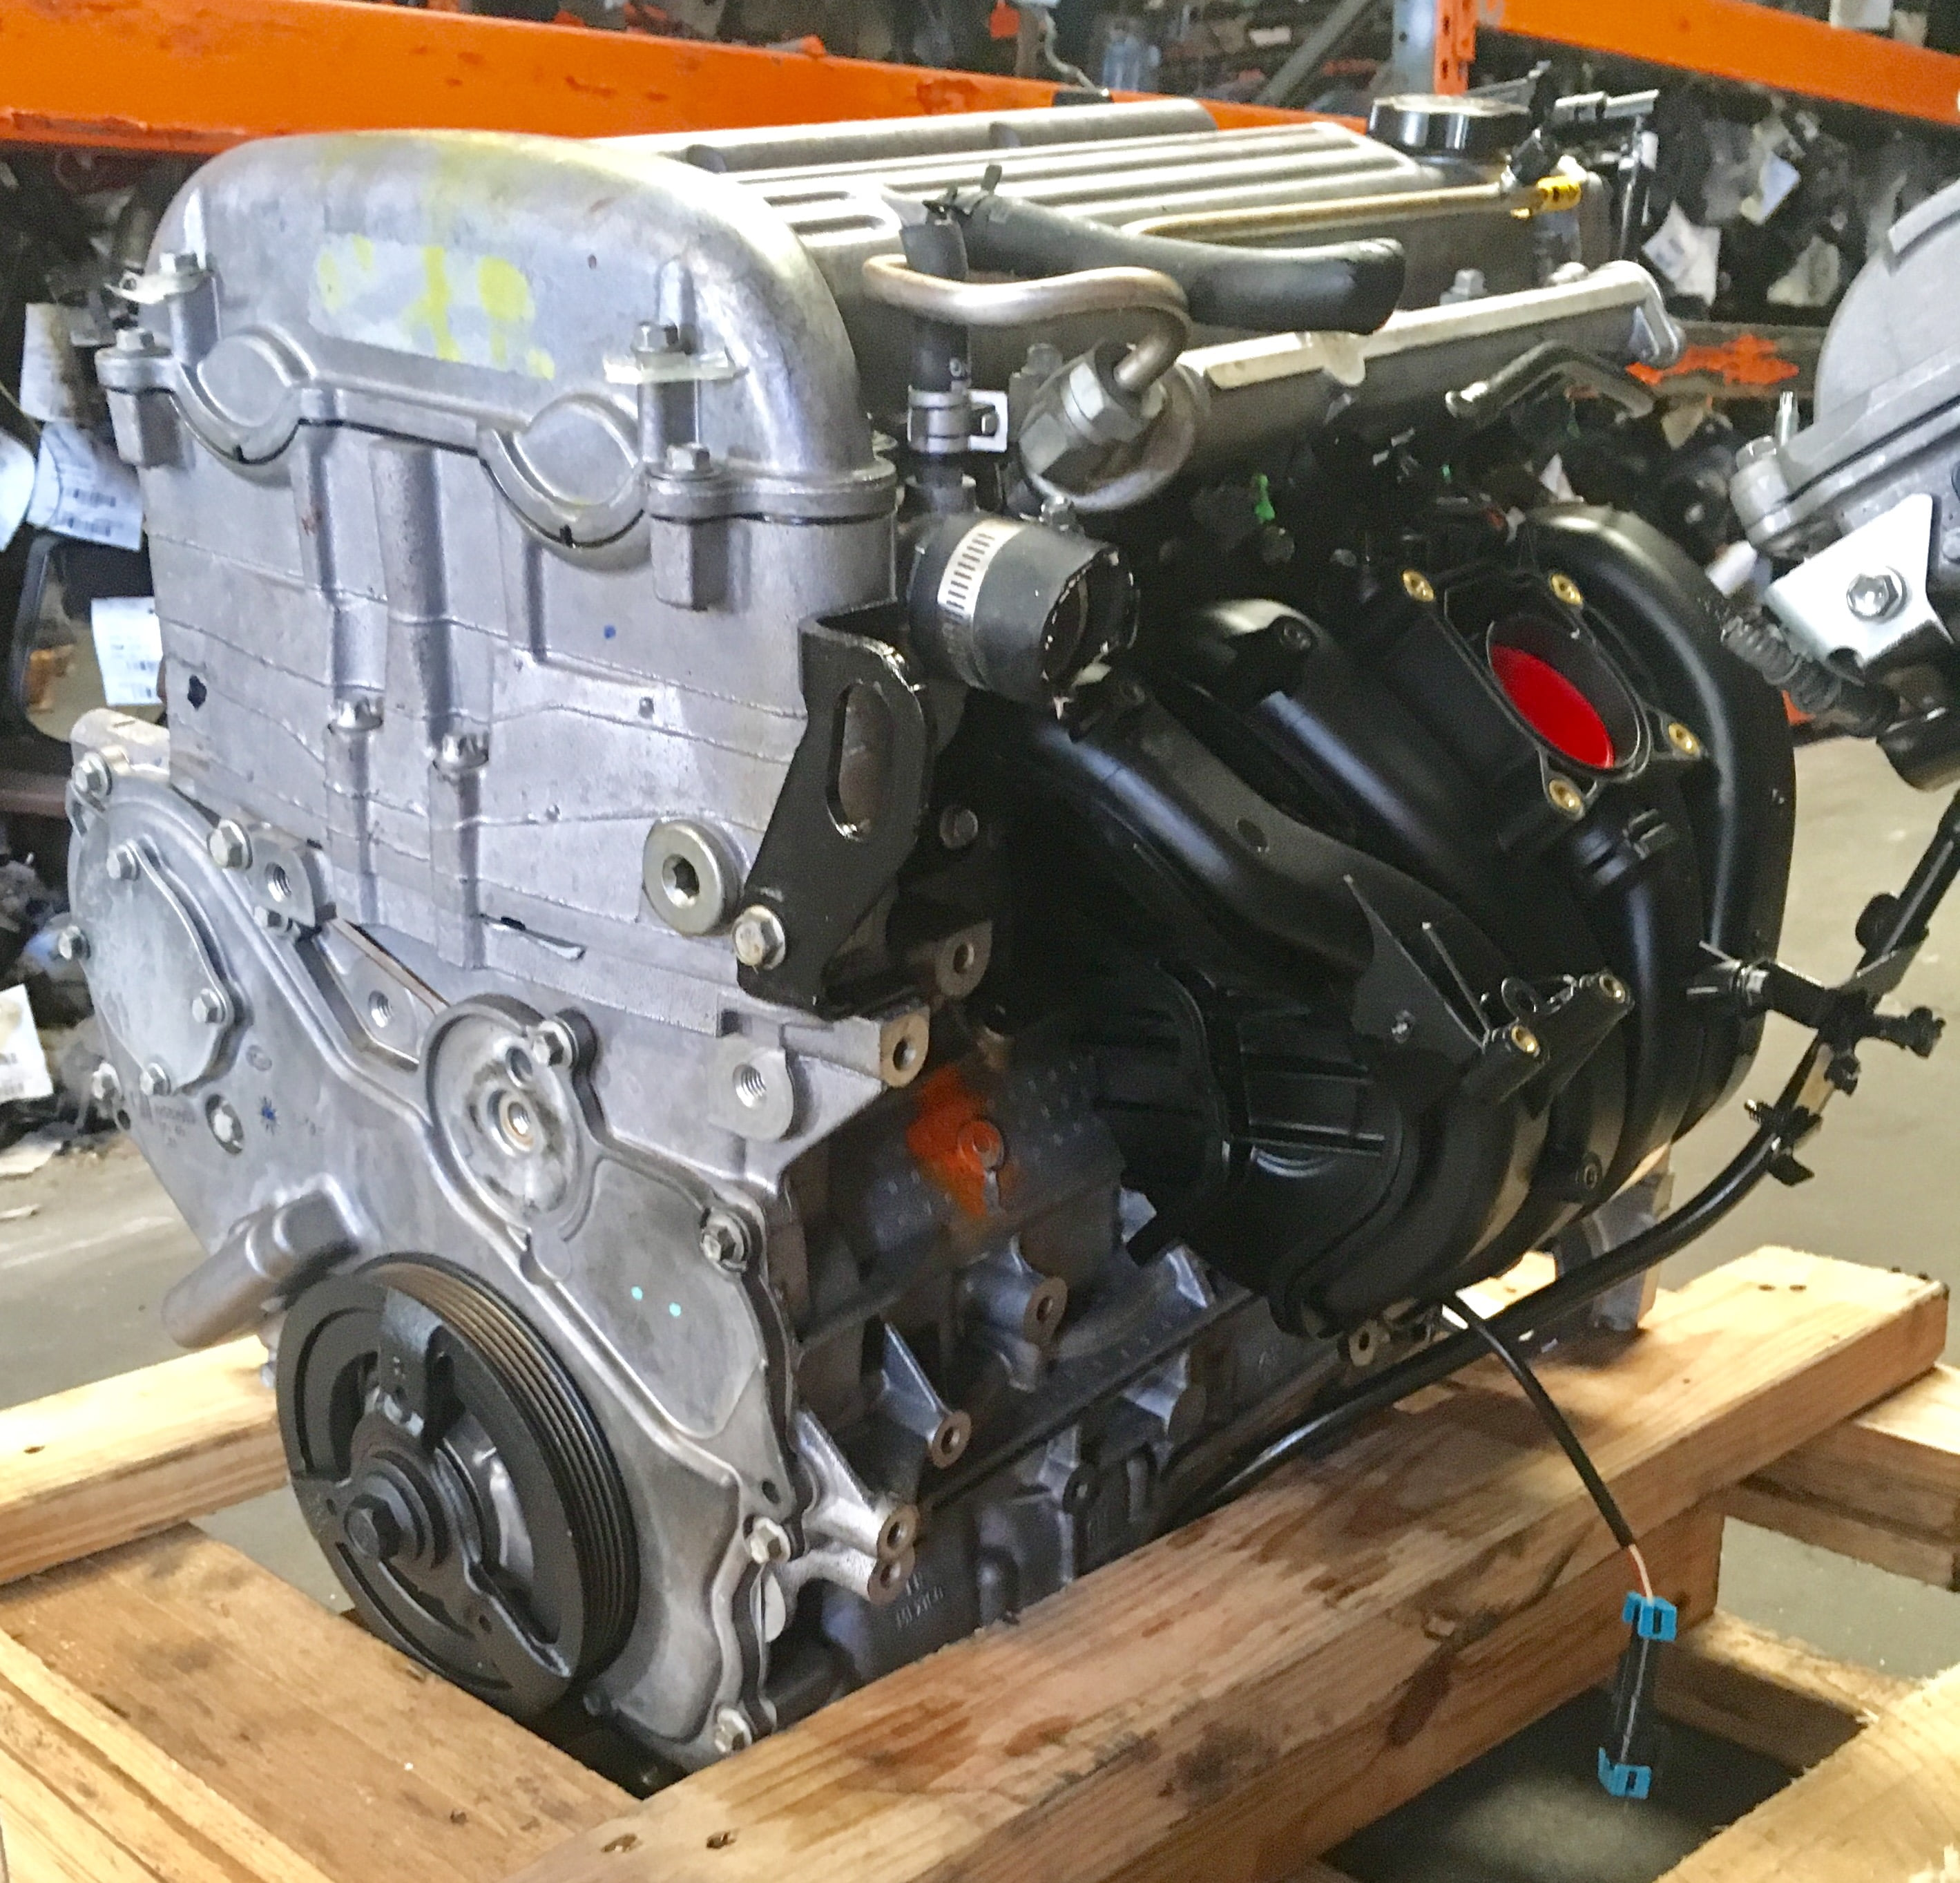 chevrolet cobalt malibu hhr saturn ion vue engine 2 2l